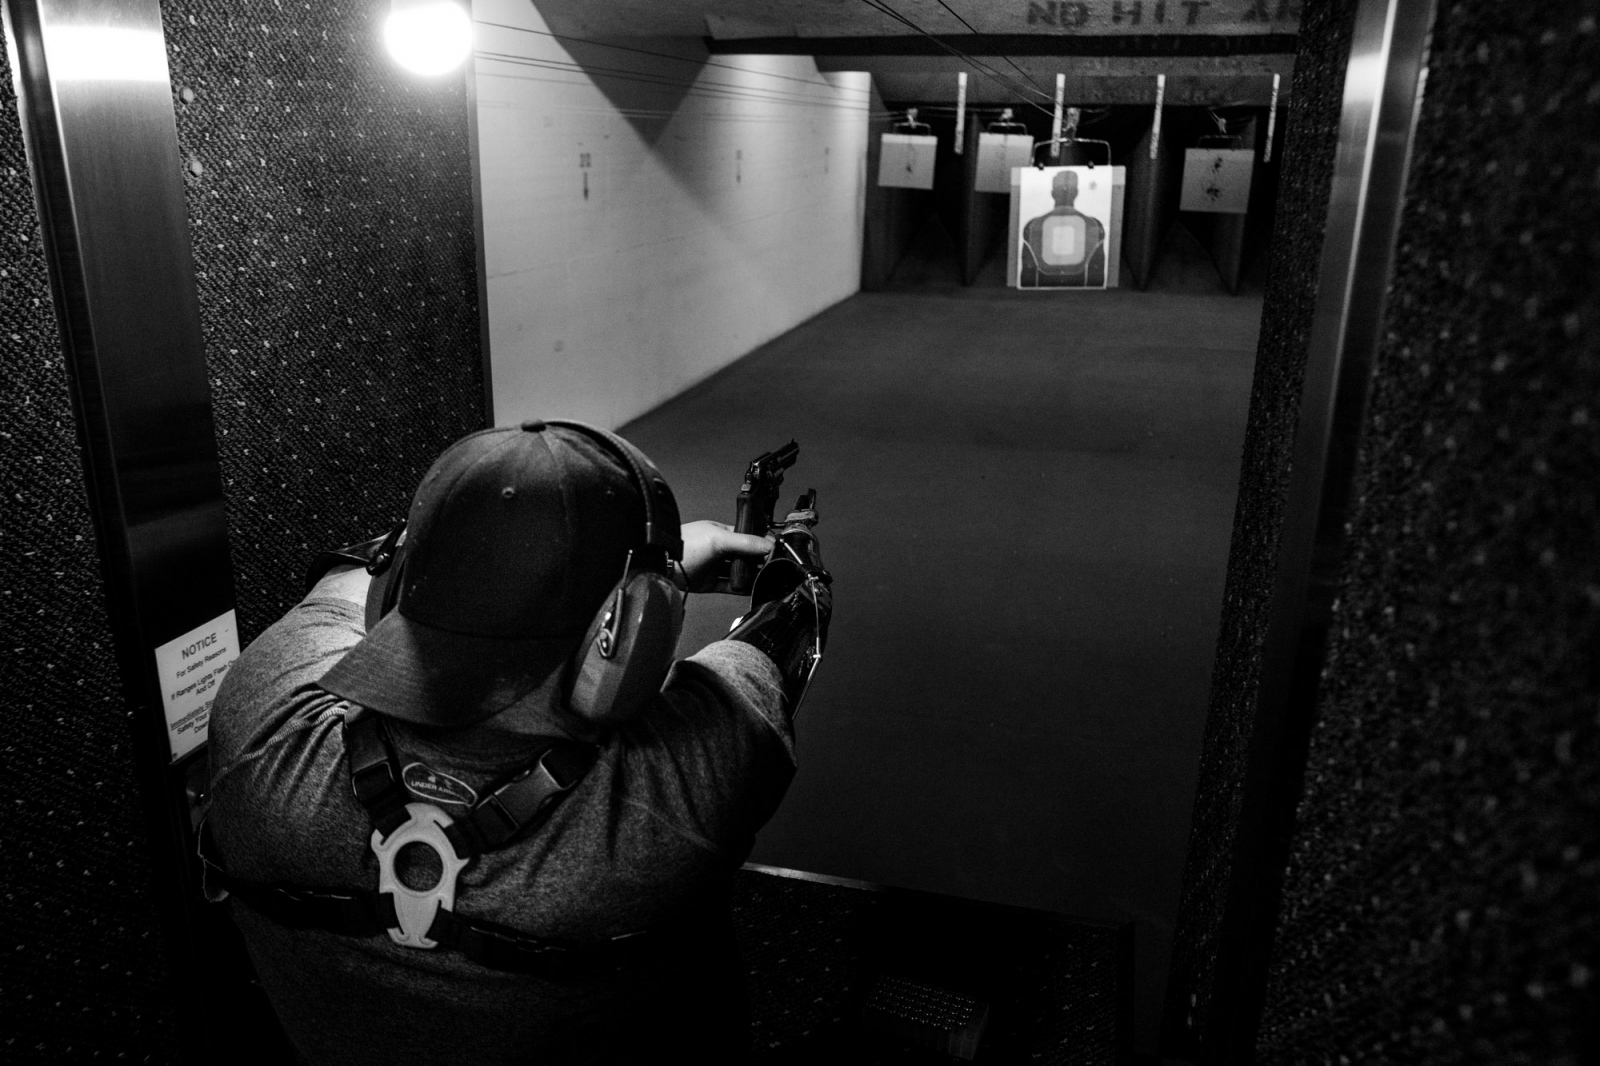 Lake Ozark, Missouri, Usa, 2016. Todd Nicely, practicing with his revolver at the shooting range.